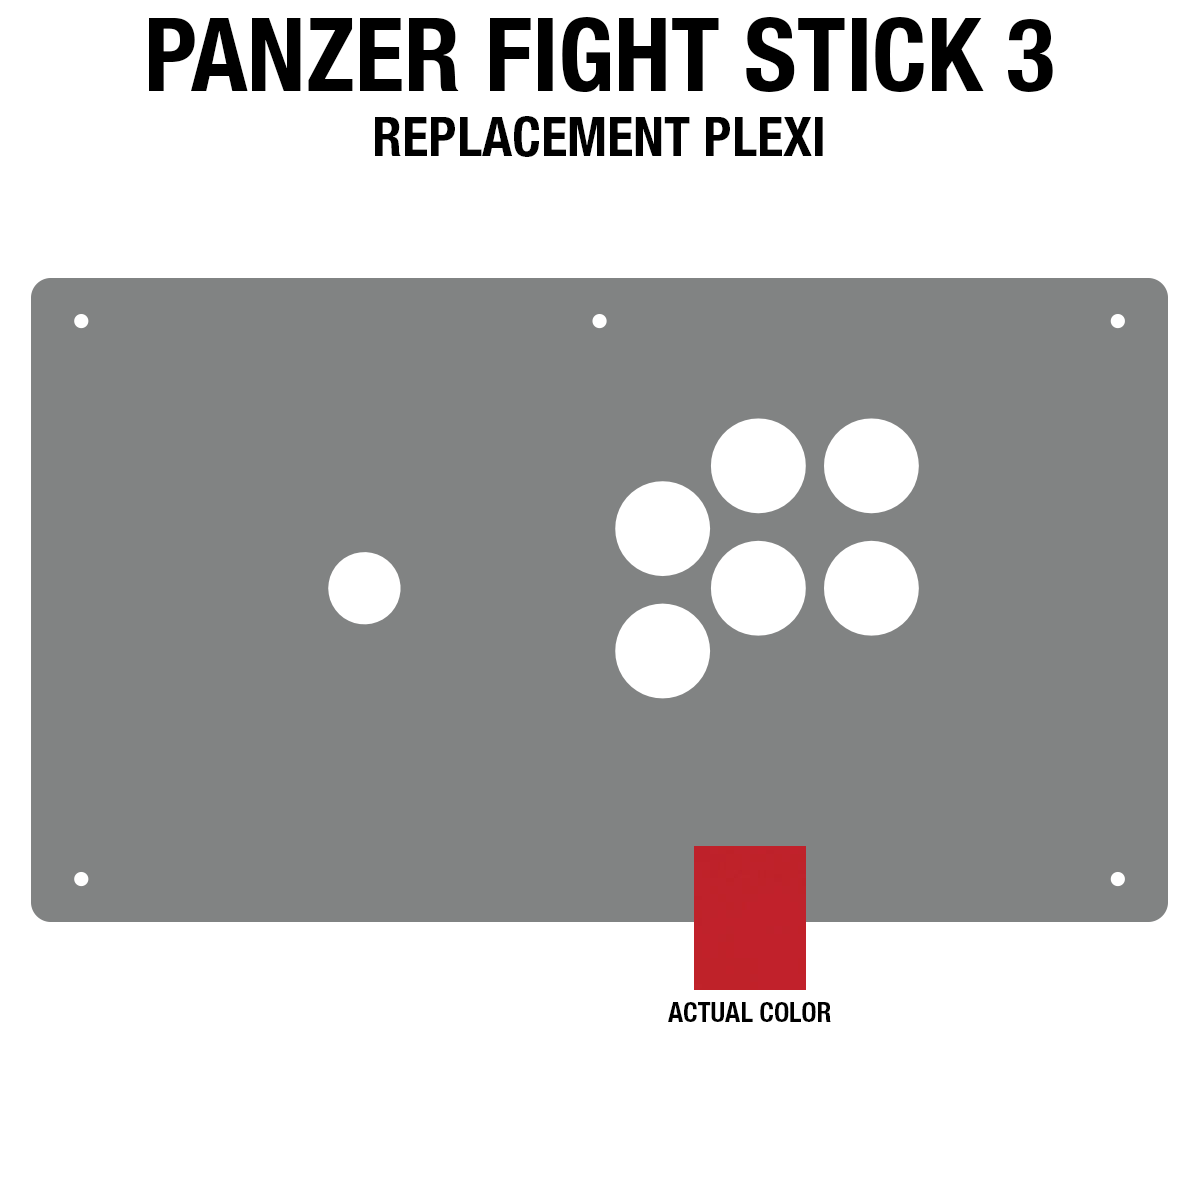 Panzer Fight Stick 3 Plexi - Red Frosted (6 Buttons)